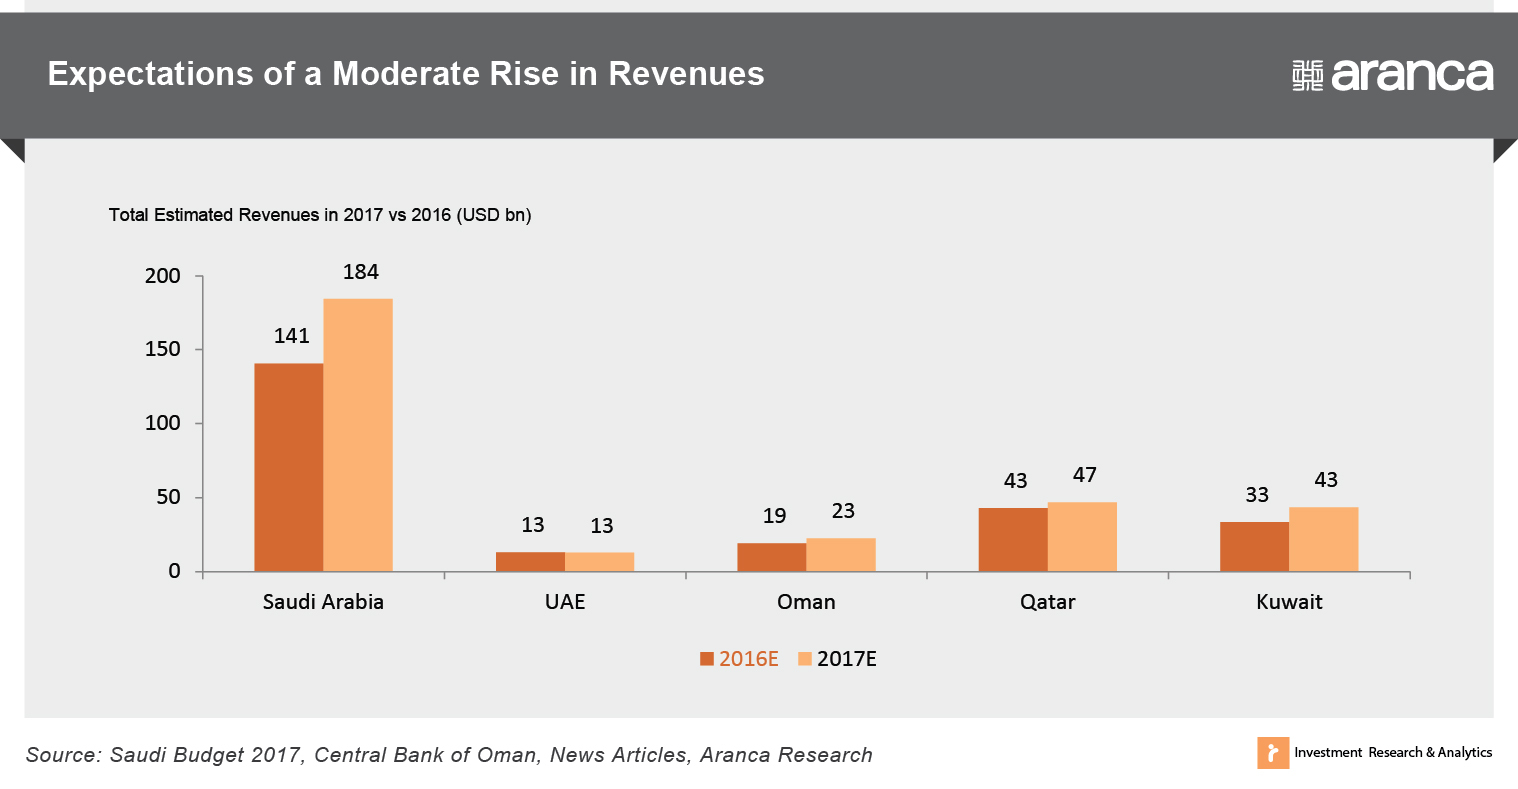 Expectations of a Moderate Rise in Revenues